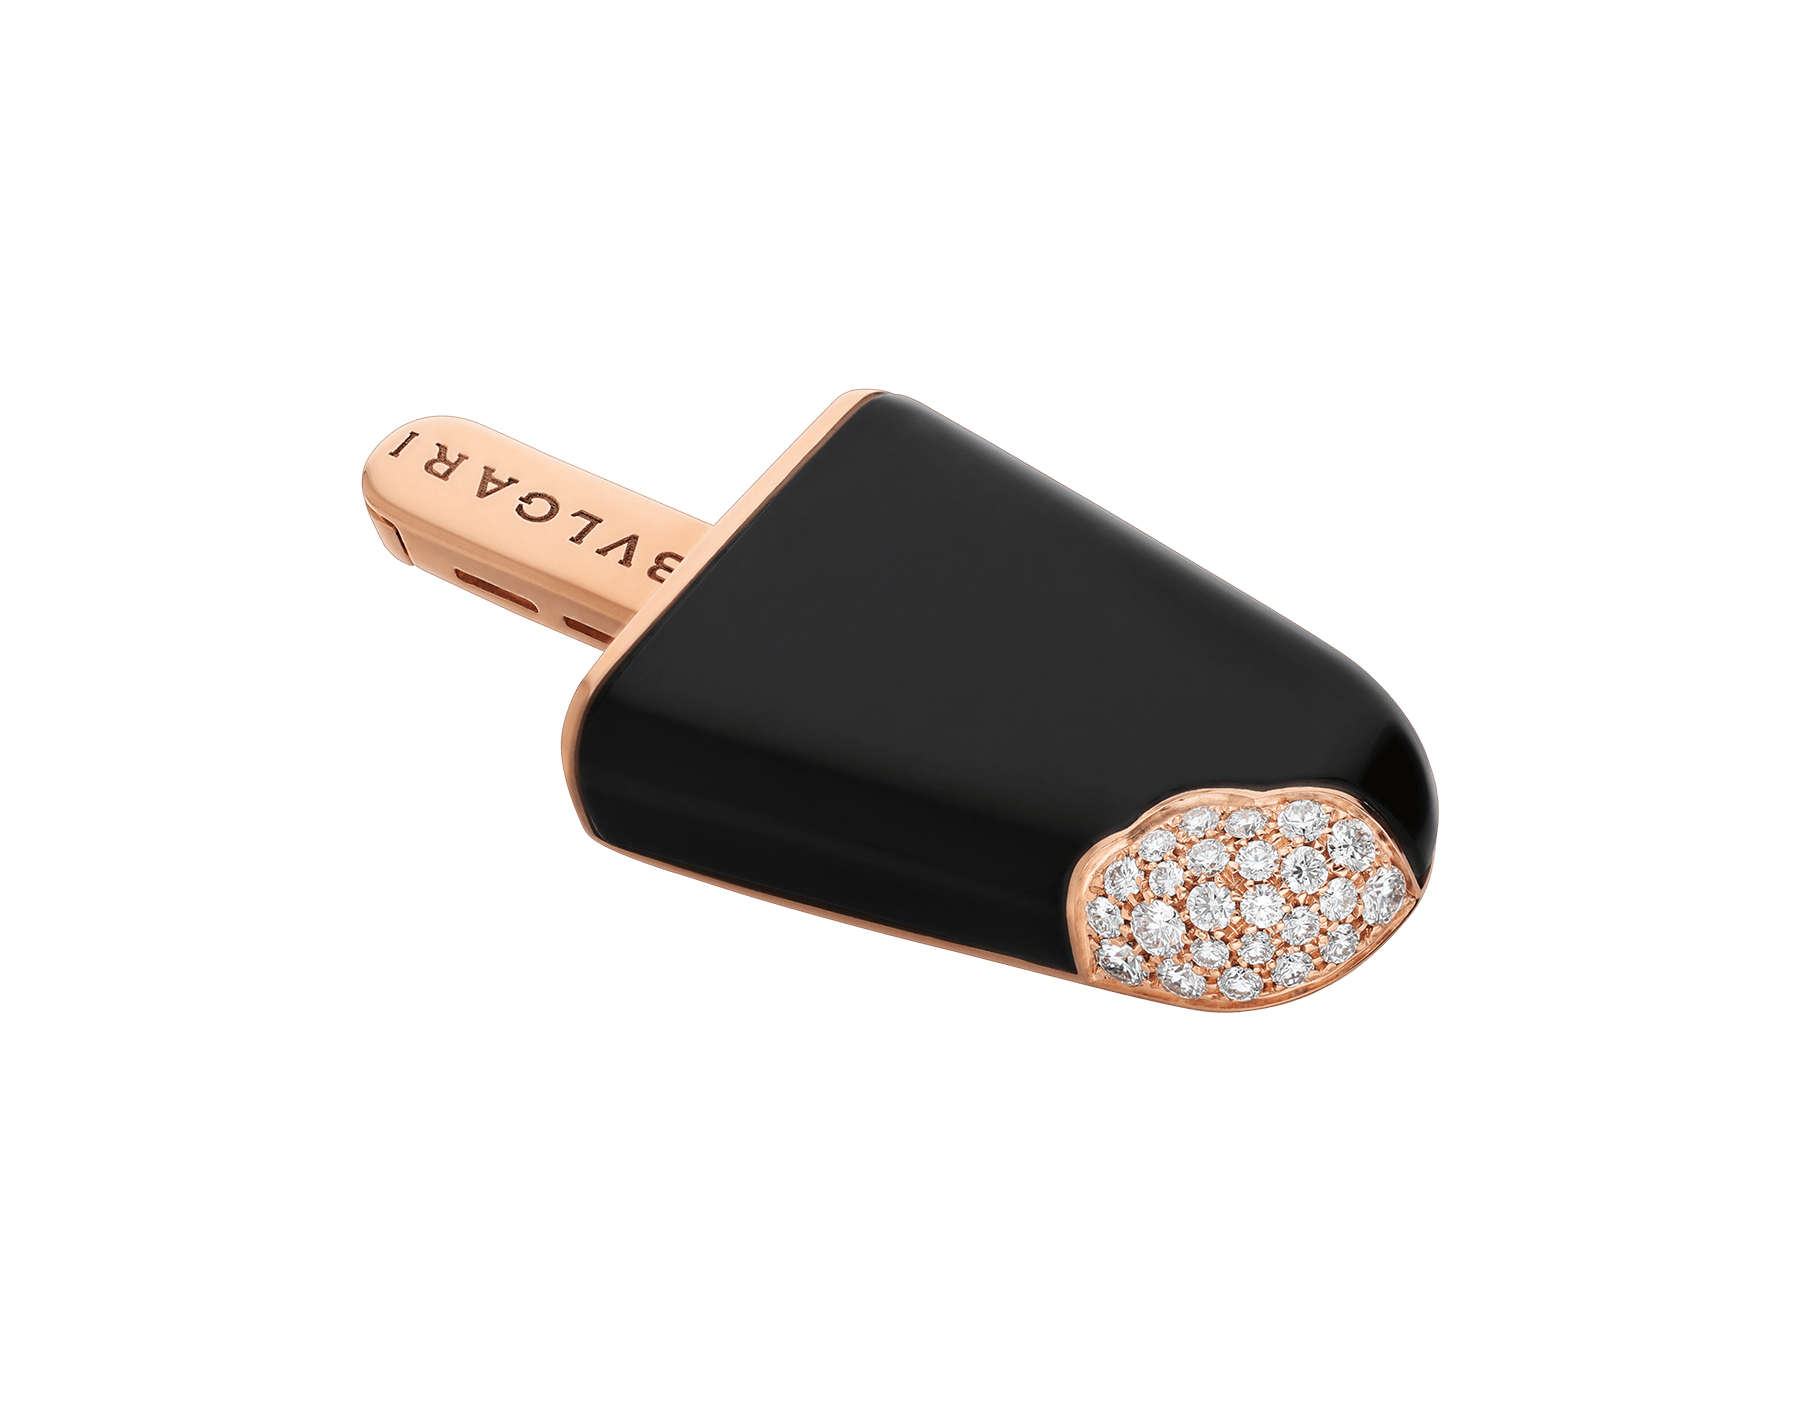 BVLGARI BVLGARI Gelati 18 kt rose gold brooch set with onyx and pavé diamonds 354745 image 2